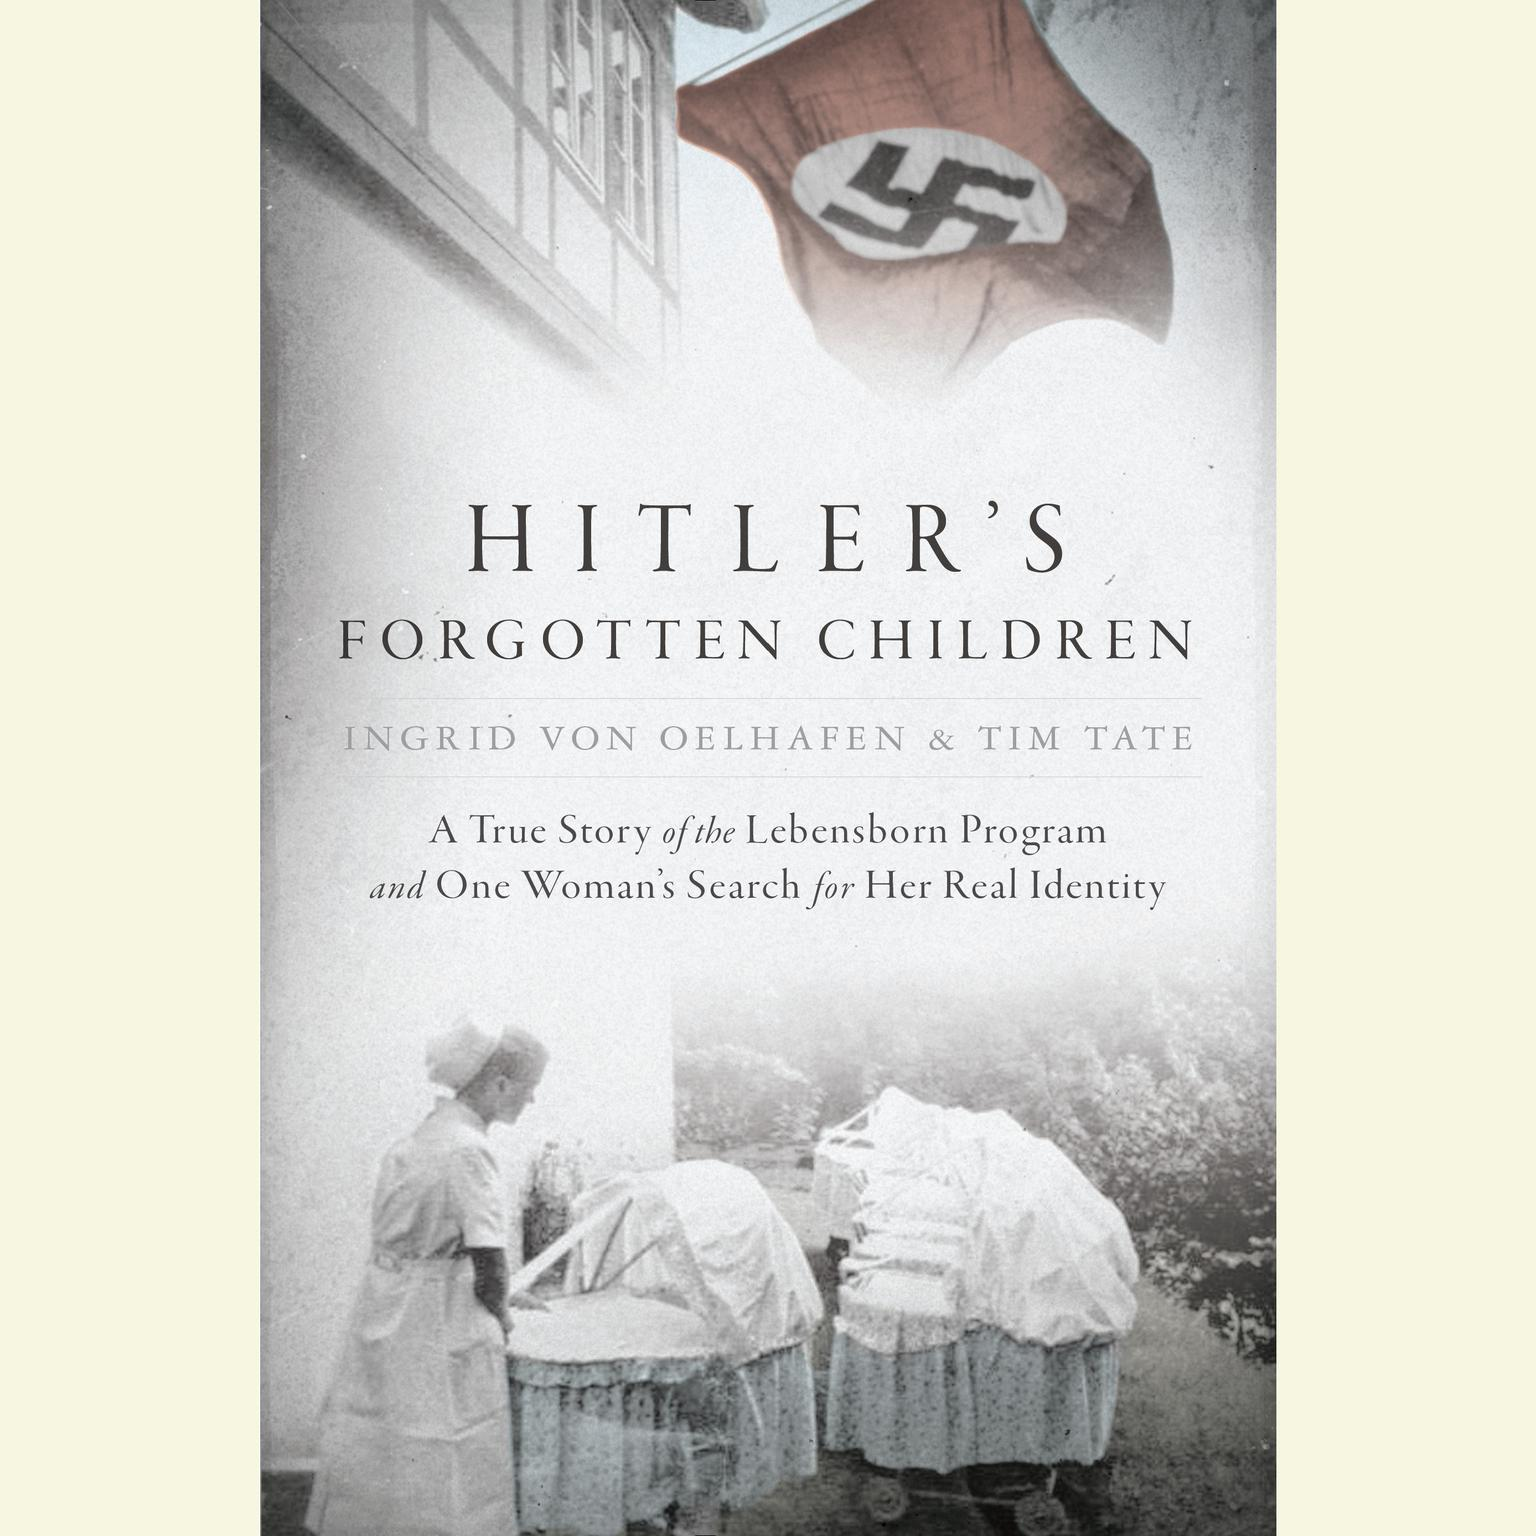 Printable Hitler's Forgotten Children: A True Story of the Lebensborn Program and One Woman's Search for Her Real Identity Audiobook Cover Art